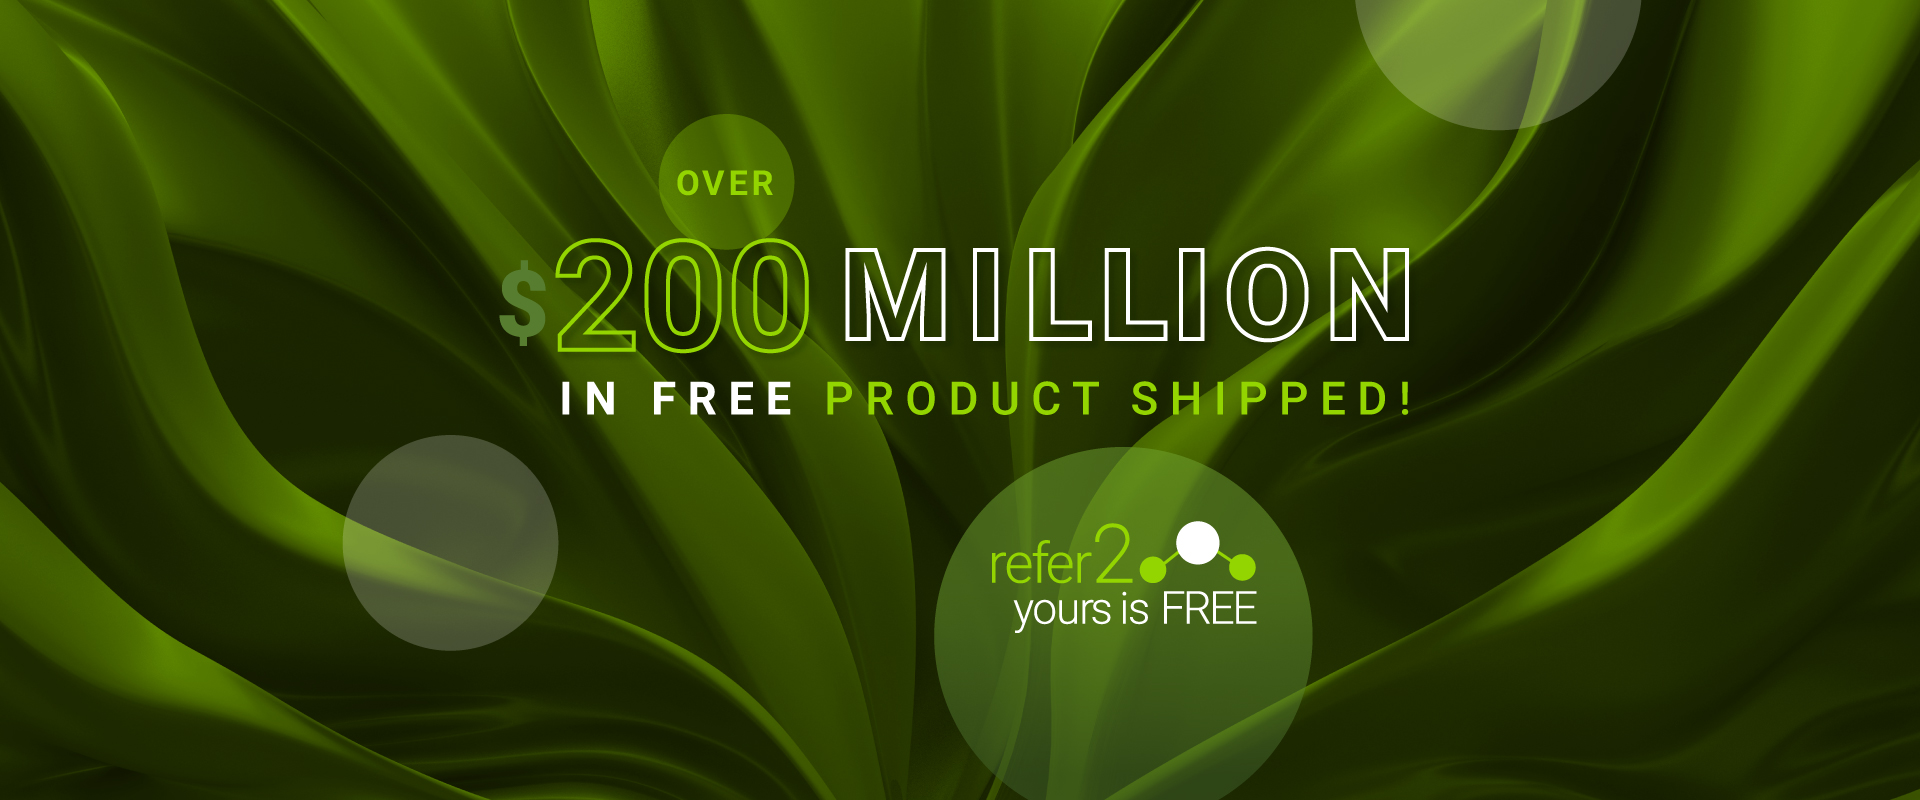 Over $200 Million in Free Product Shipped!